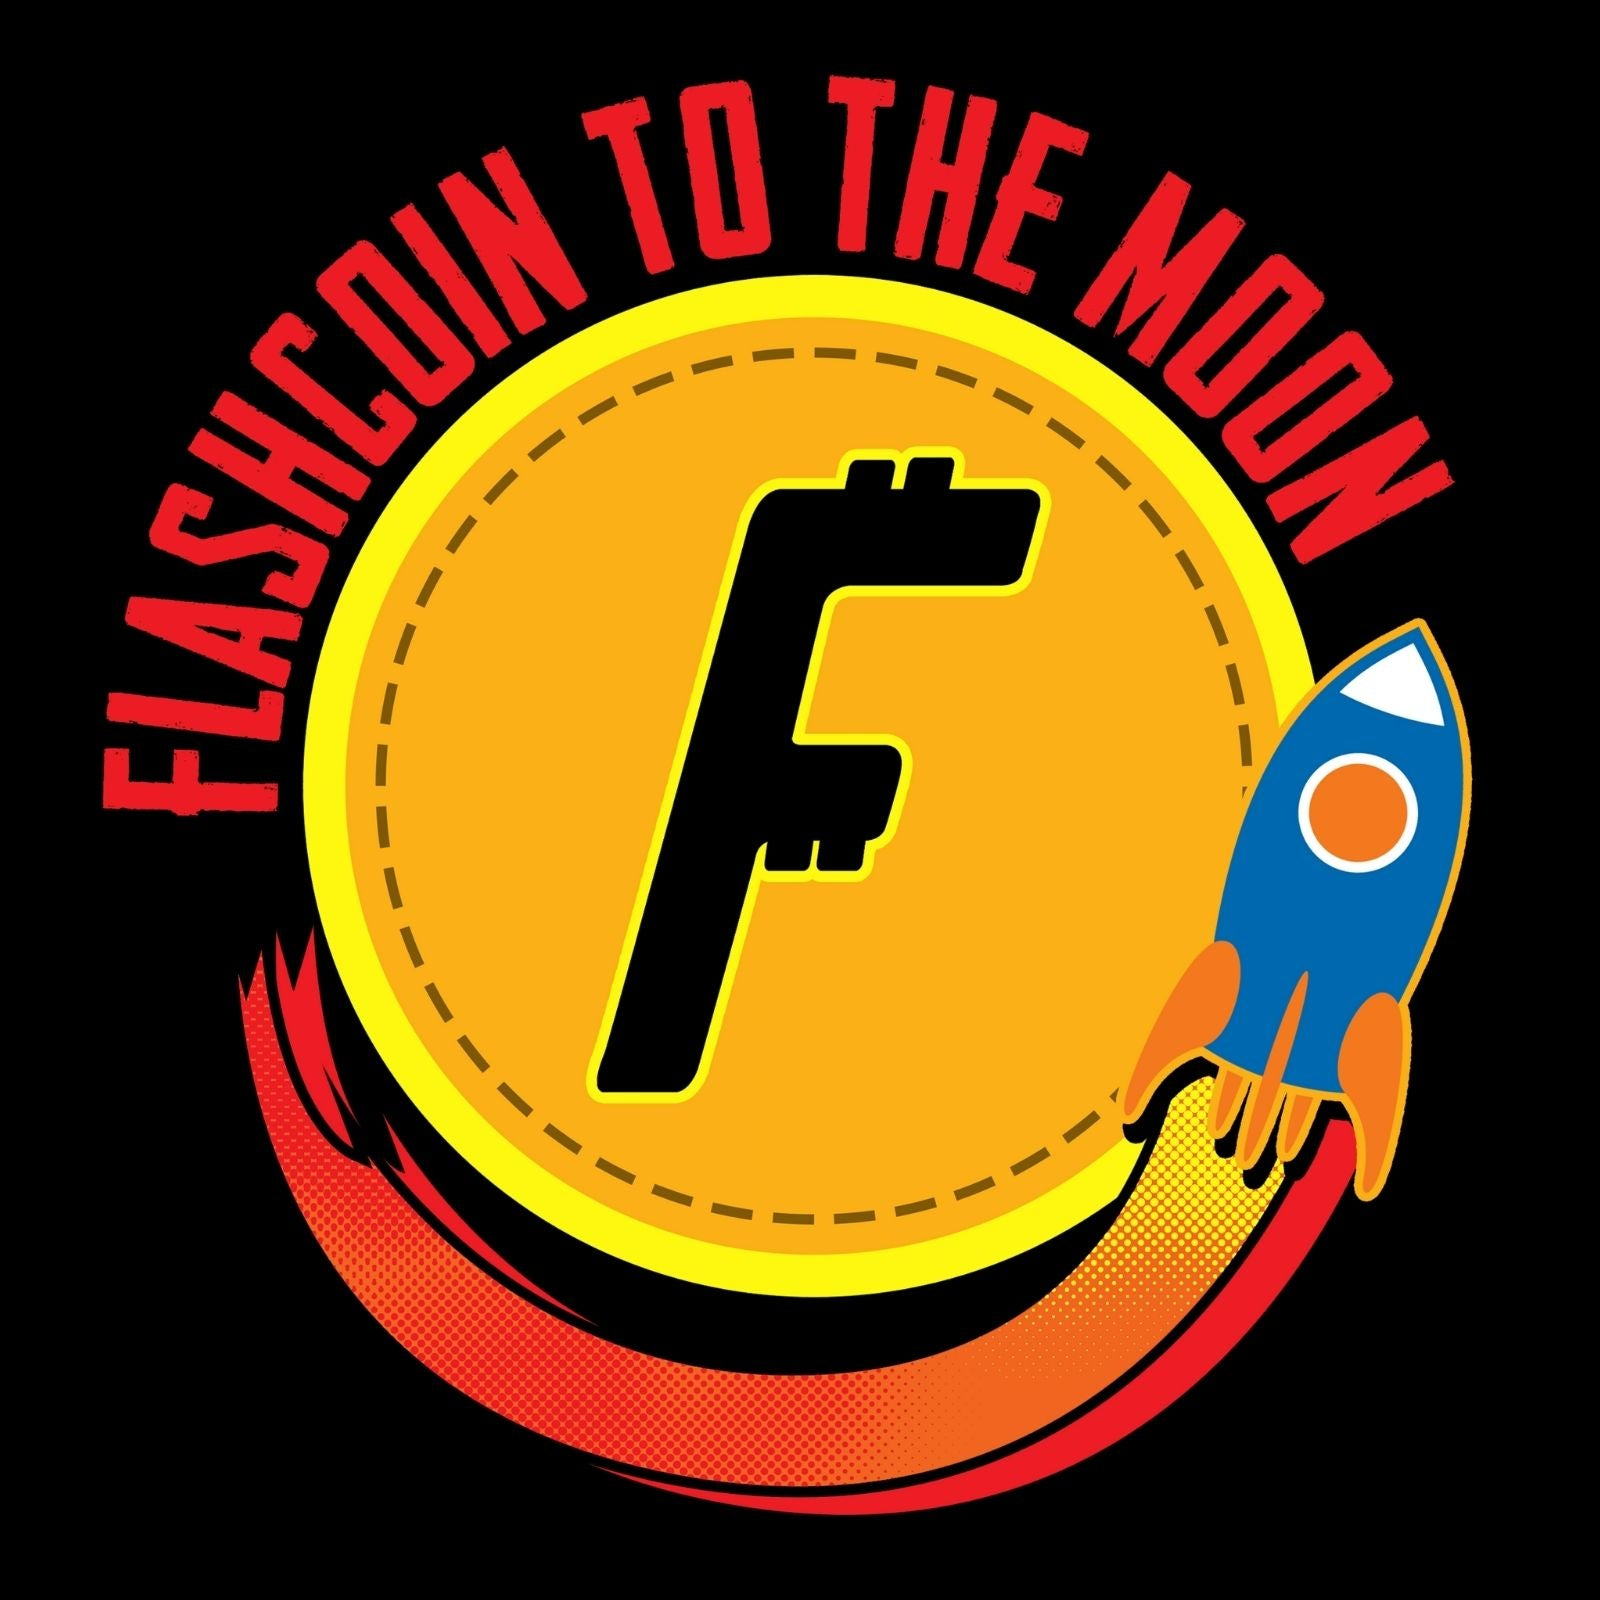 Flashcoin To The Moon 2 - Bastard Graphics